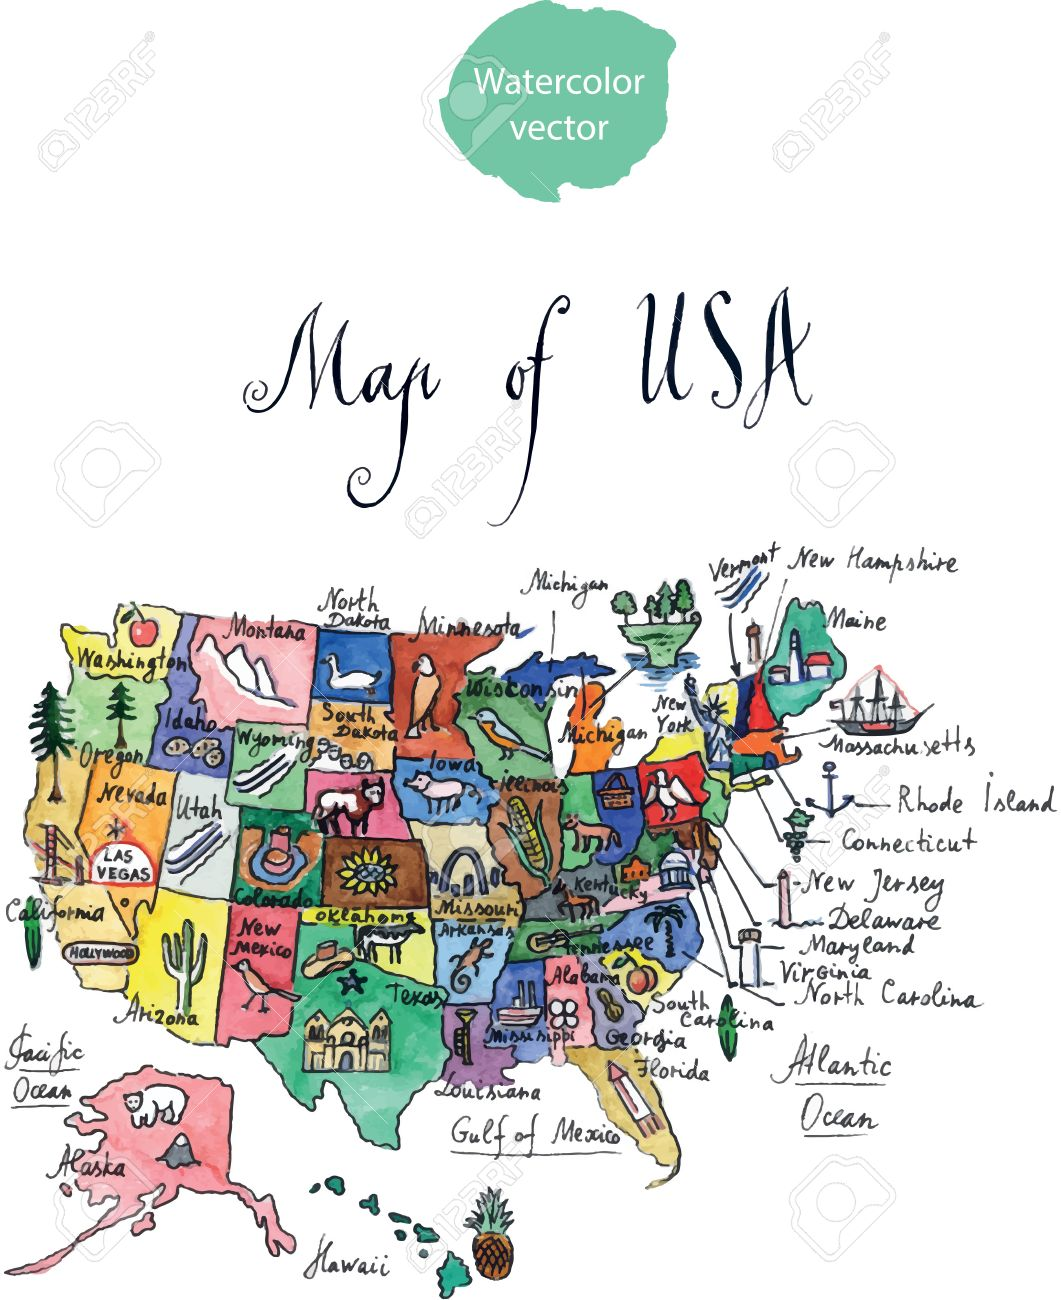 Map Of Attractions Of United States Of America Watercolor Hand - United states watercolor map